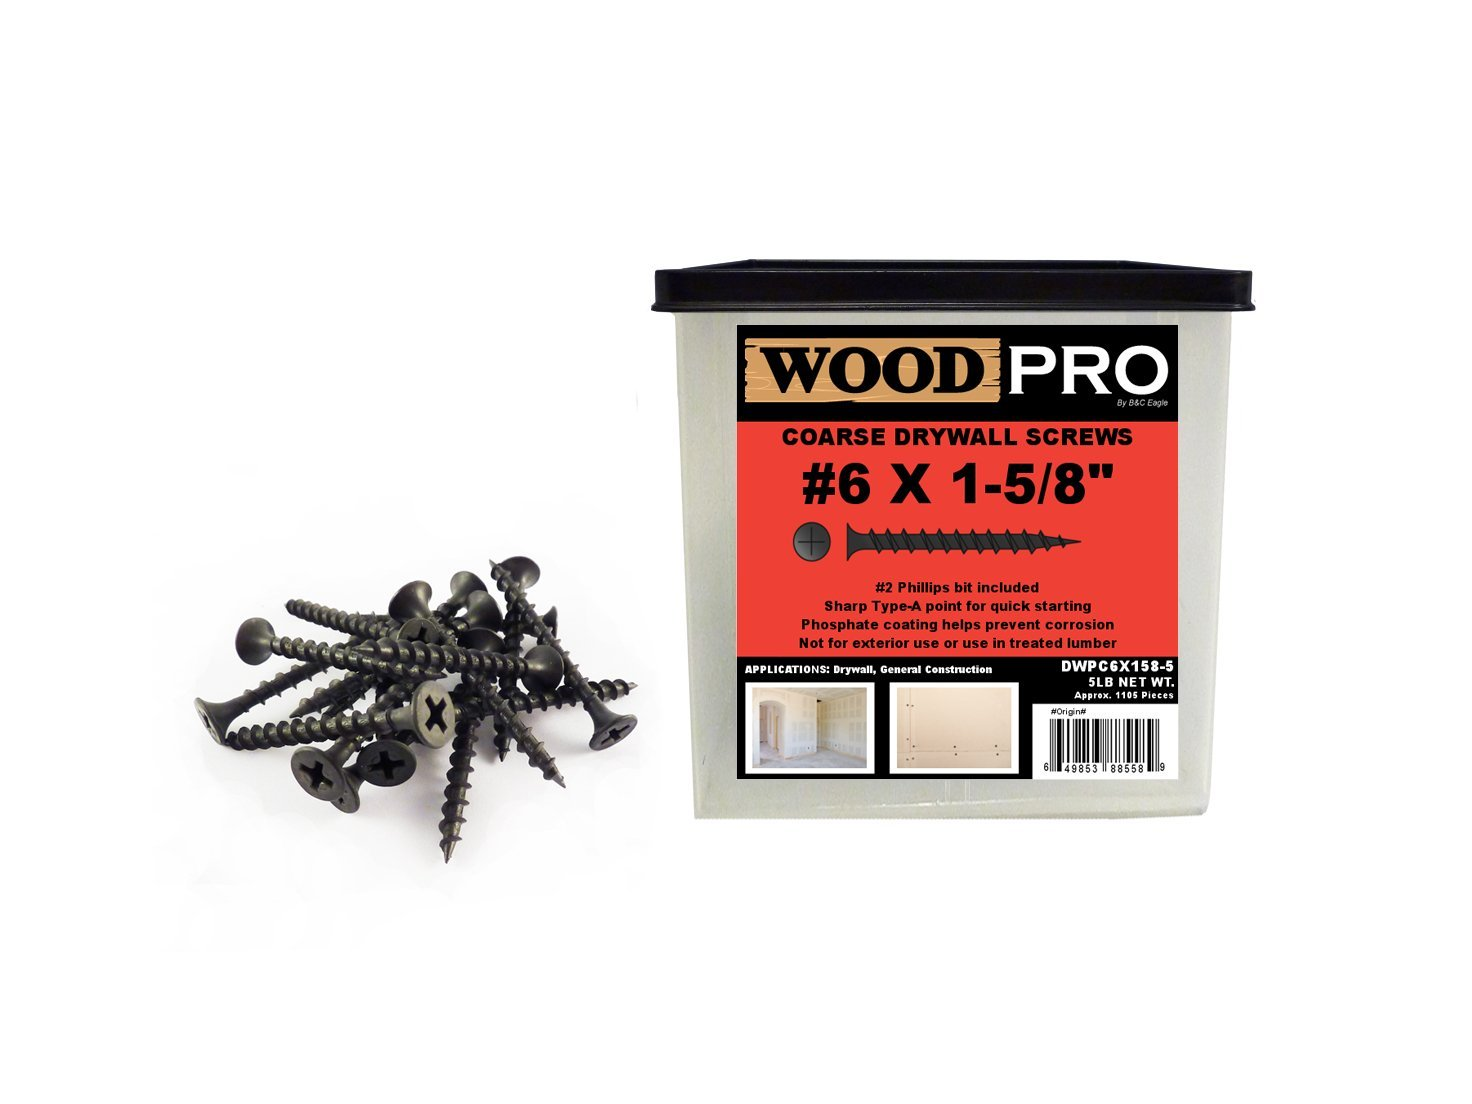 WoodPro Fasteners DWPC6X158-5 No 2 Phillips 5-Pound Net Weight 6 by 1-5/8-Inch Coarse Drywall Screws, 1105-Piece